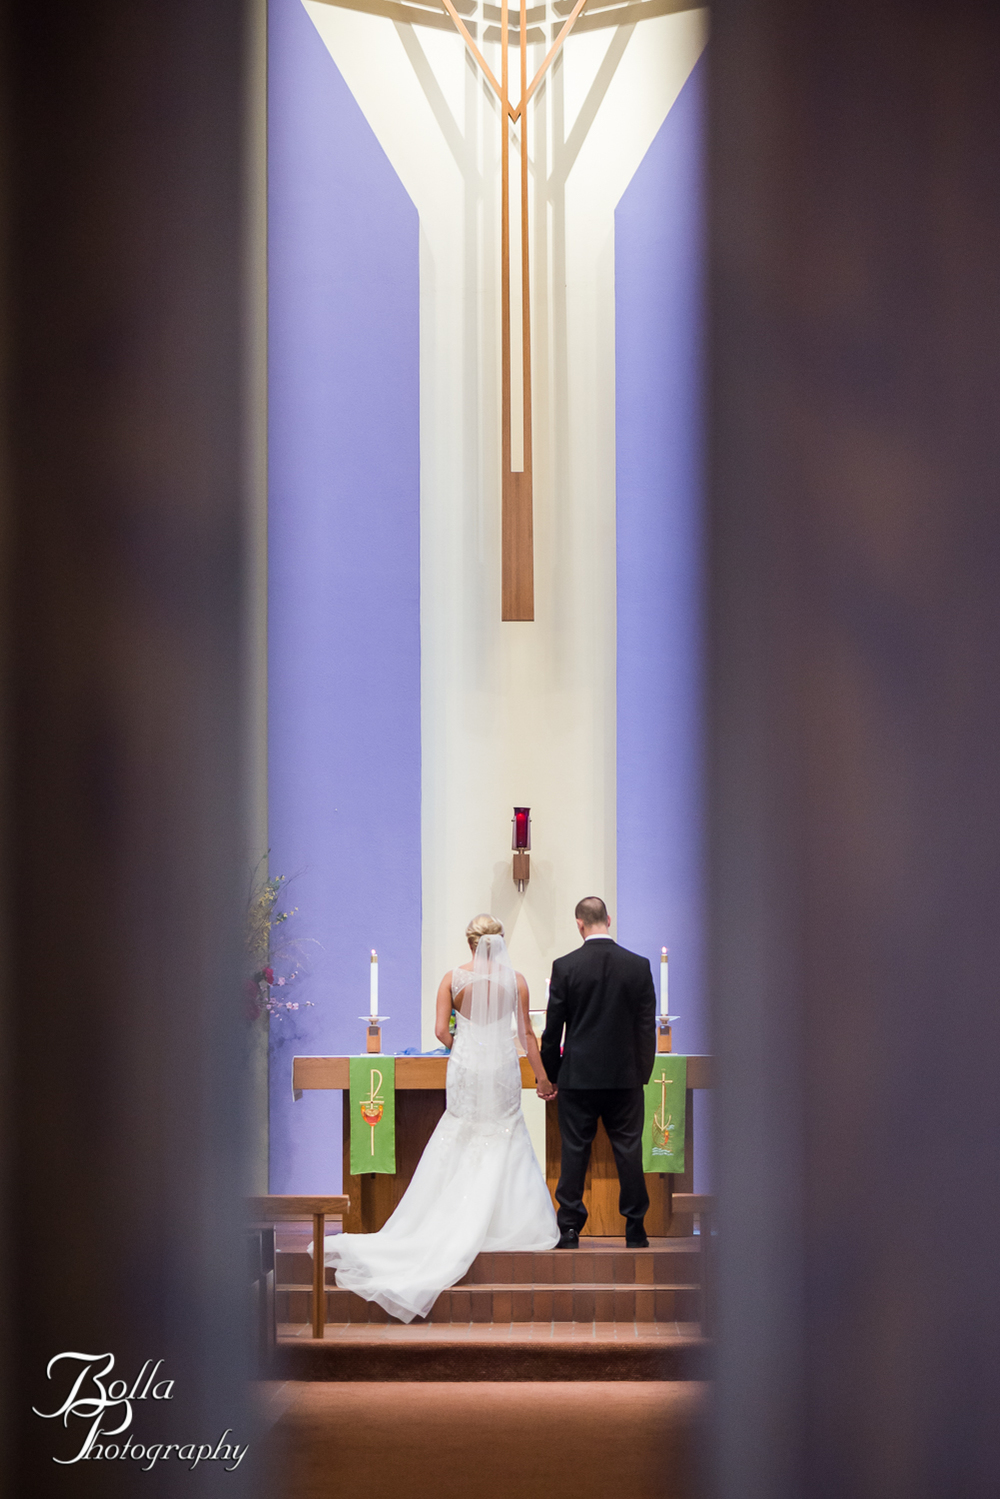 Bolla_Photography_St_Louis_wedding_photographer_Edwardsville_Highland-0168.jpg